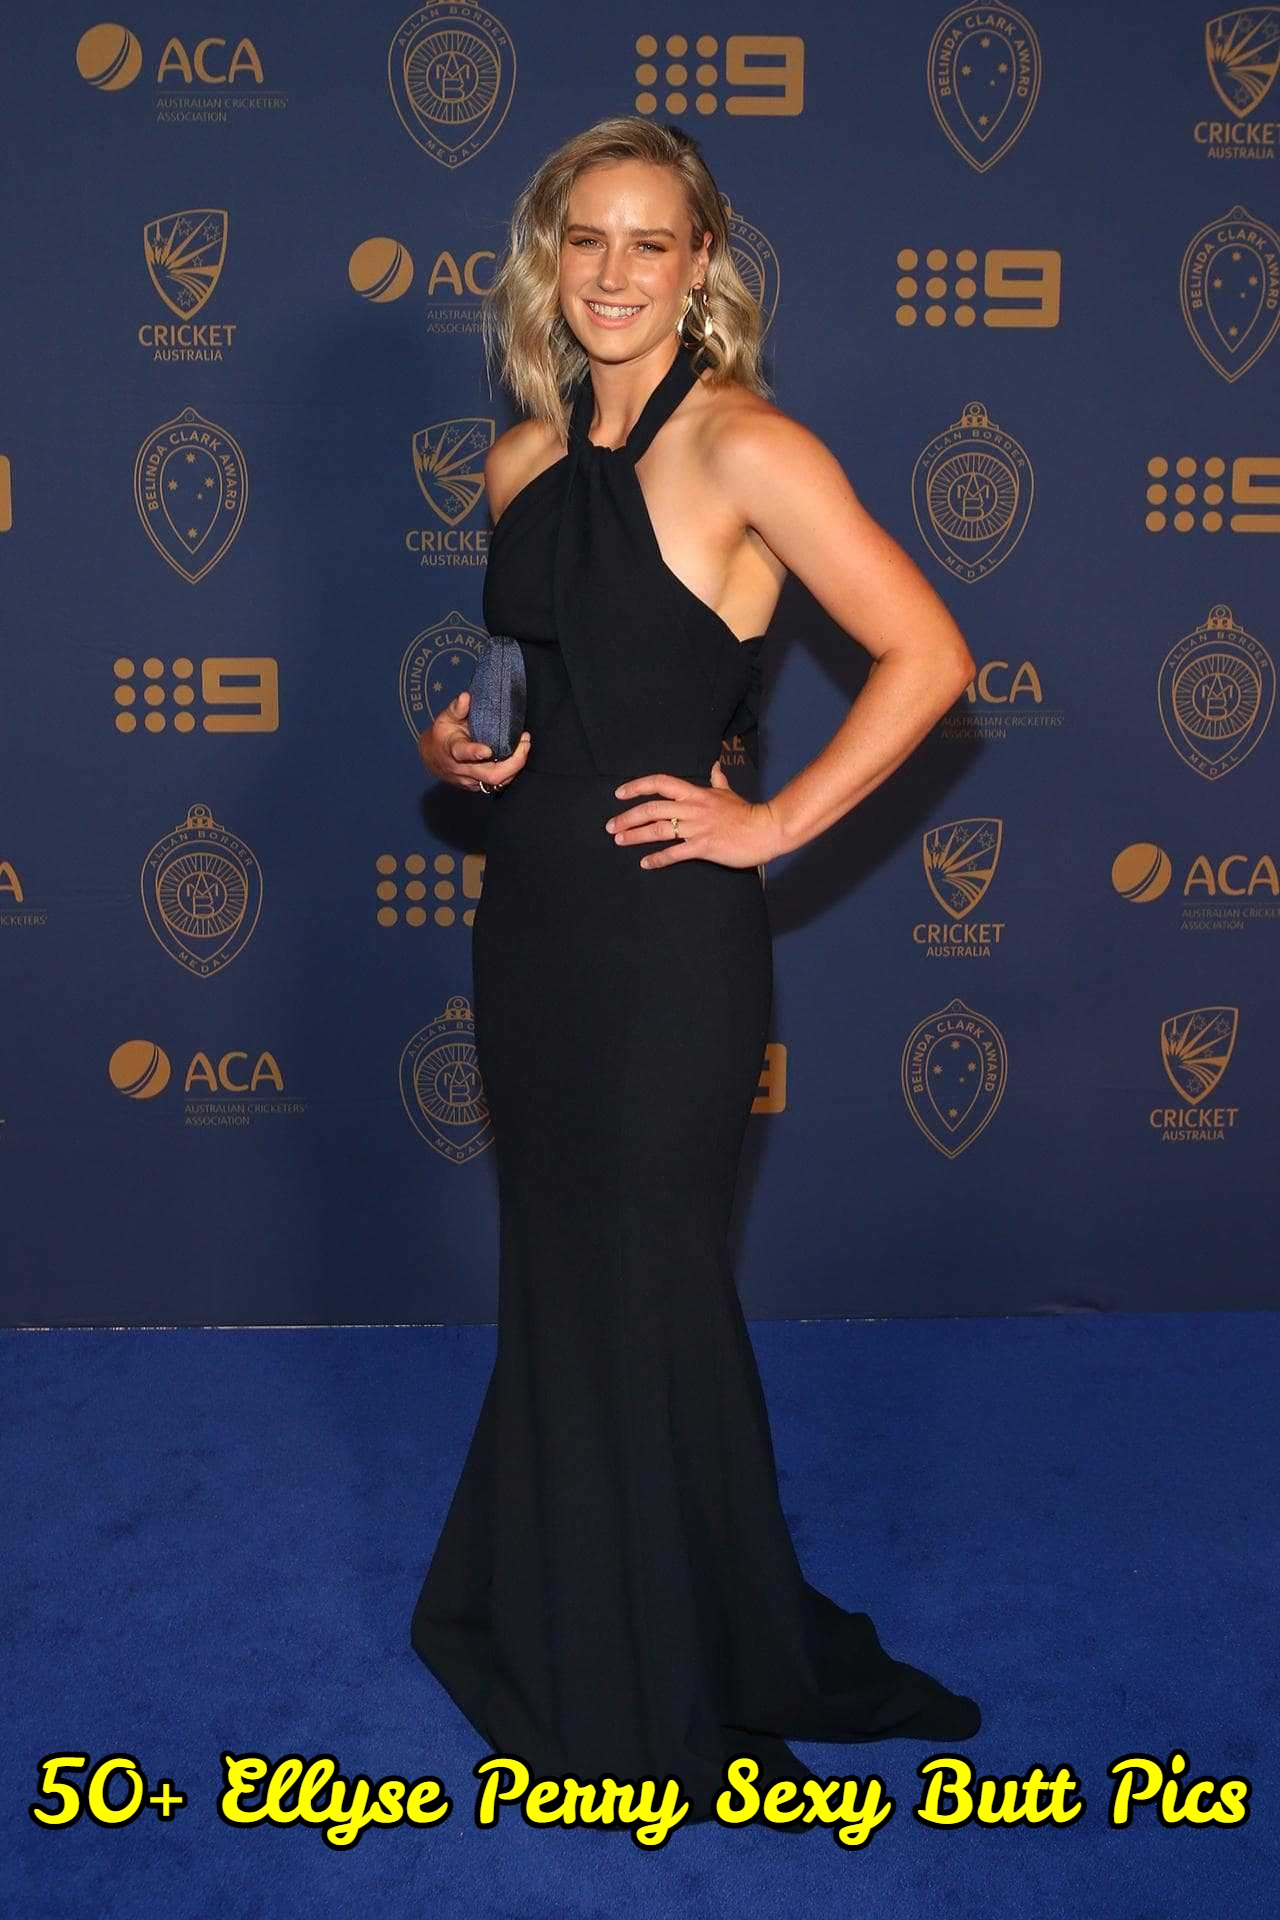 Ellyse Perry Sexy Butt Pics